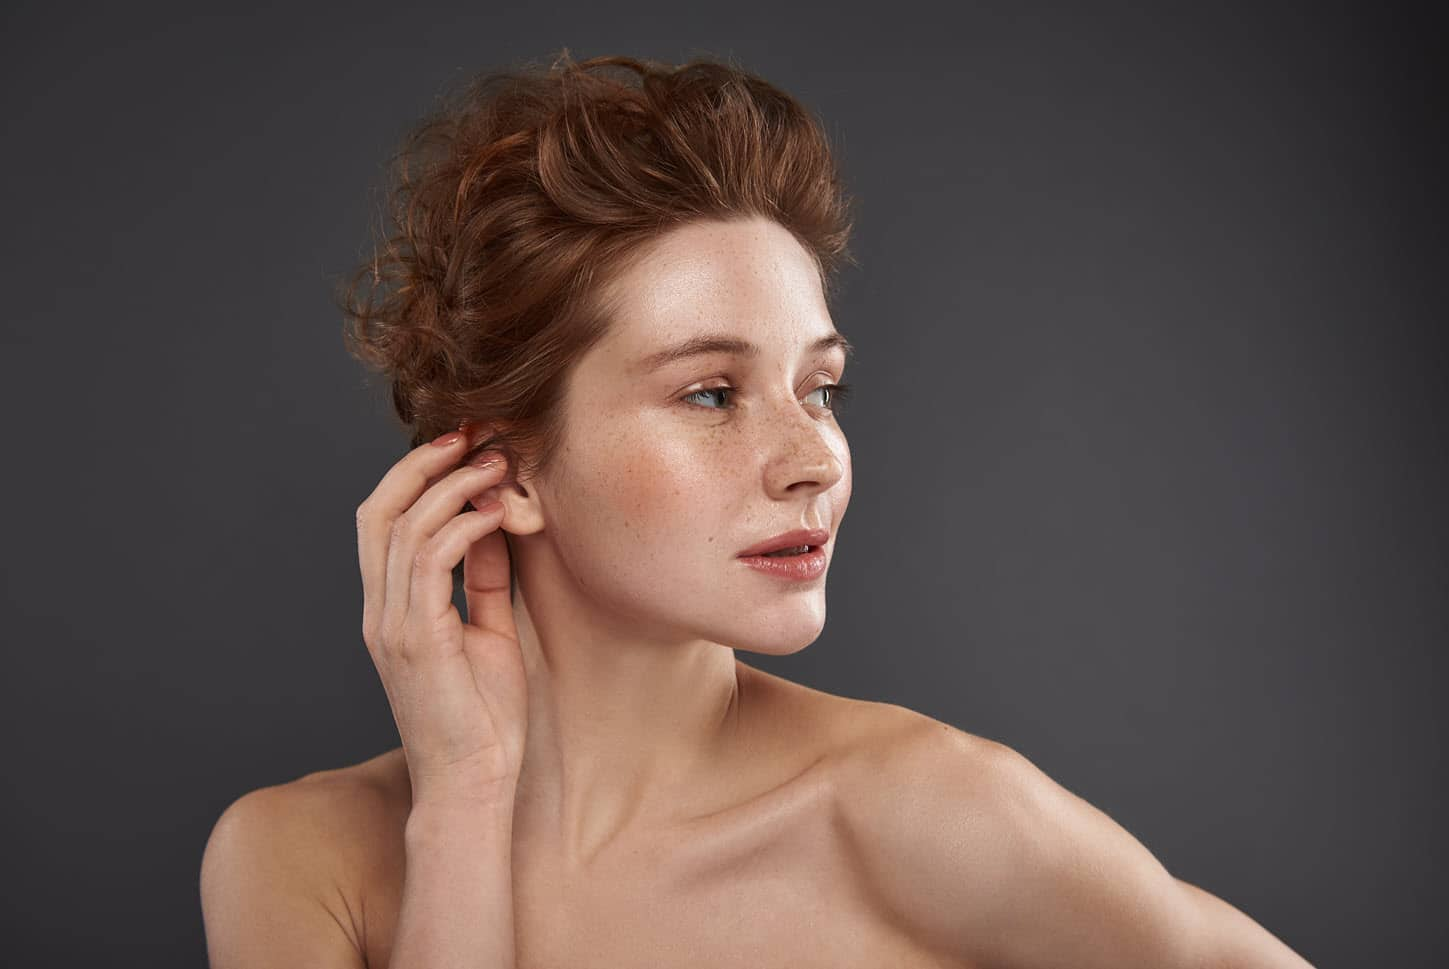 Should I wear my hearing aids all the time?